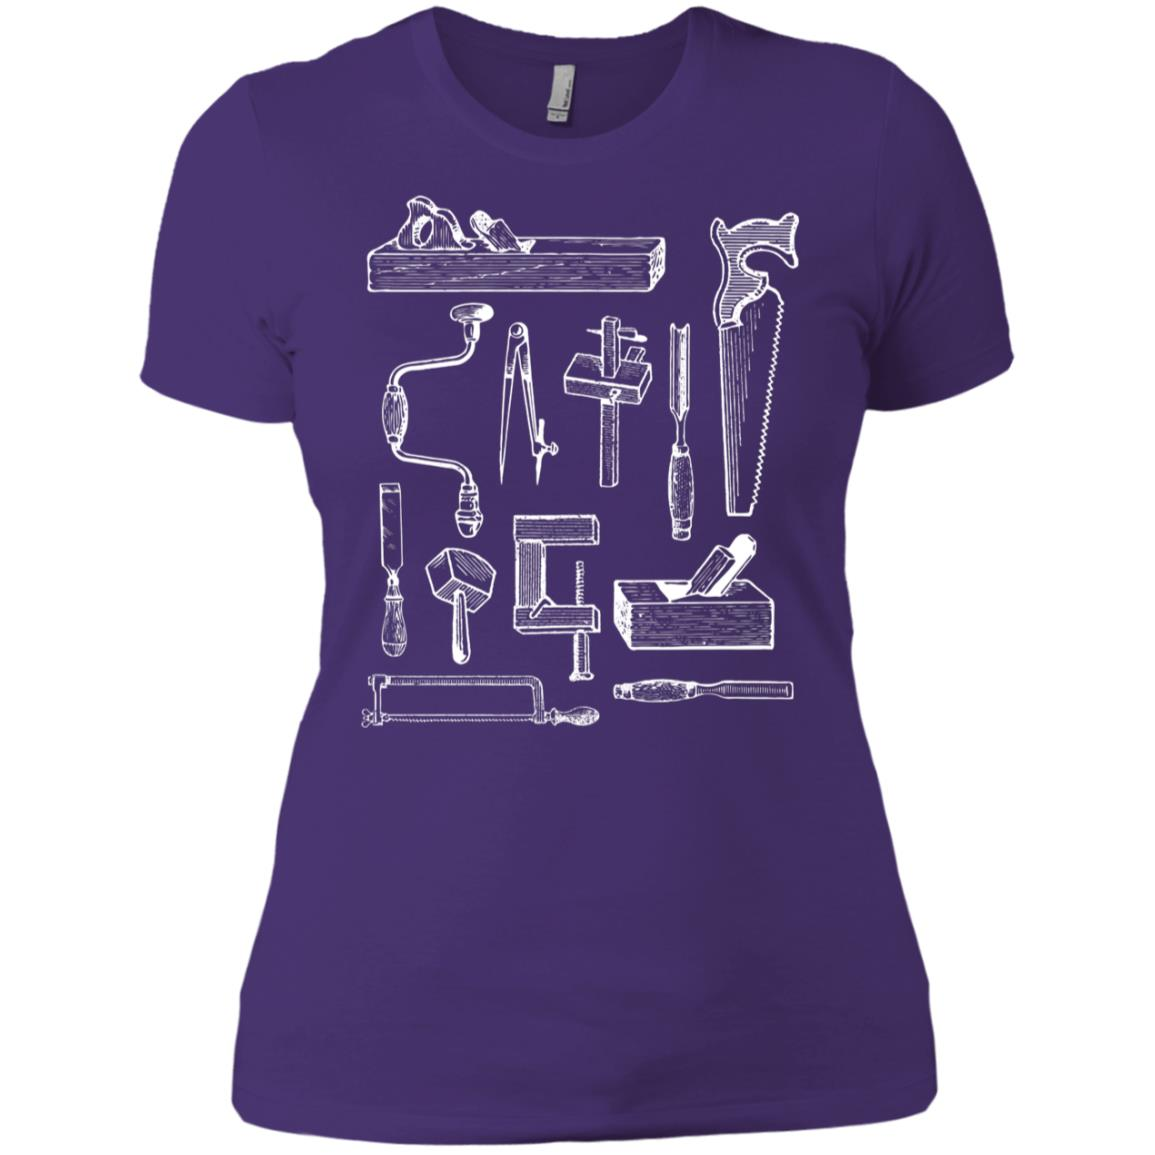 Woodworking Tools for Carpenters and Woodworkers Women Short Sleeve